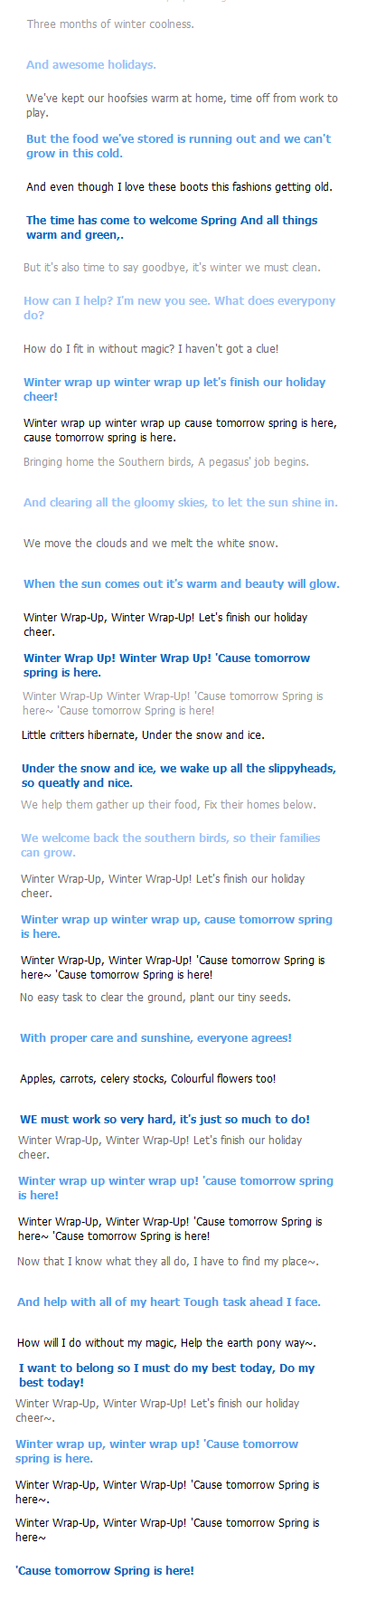 Cleverbot Sings Winter Wrap Up